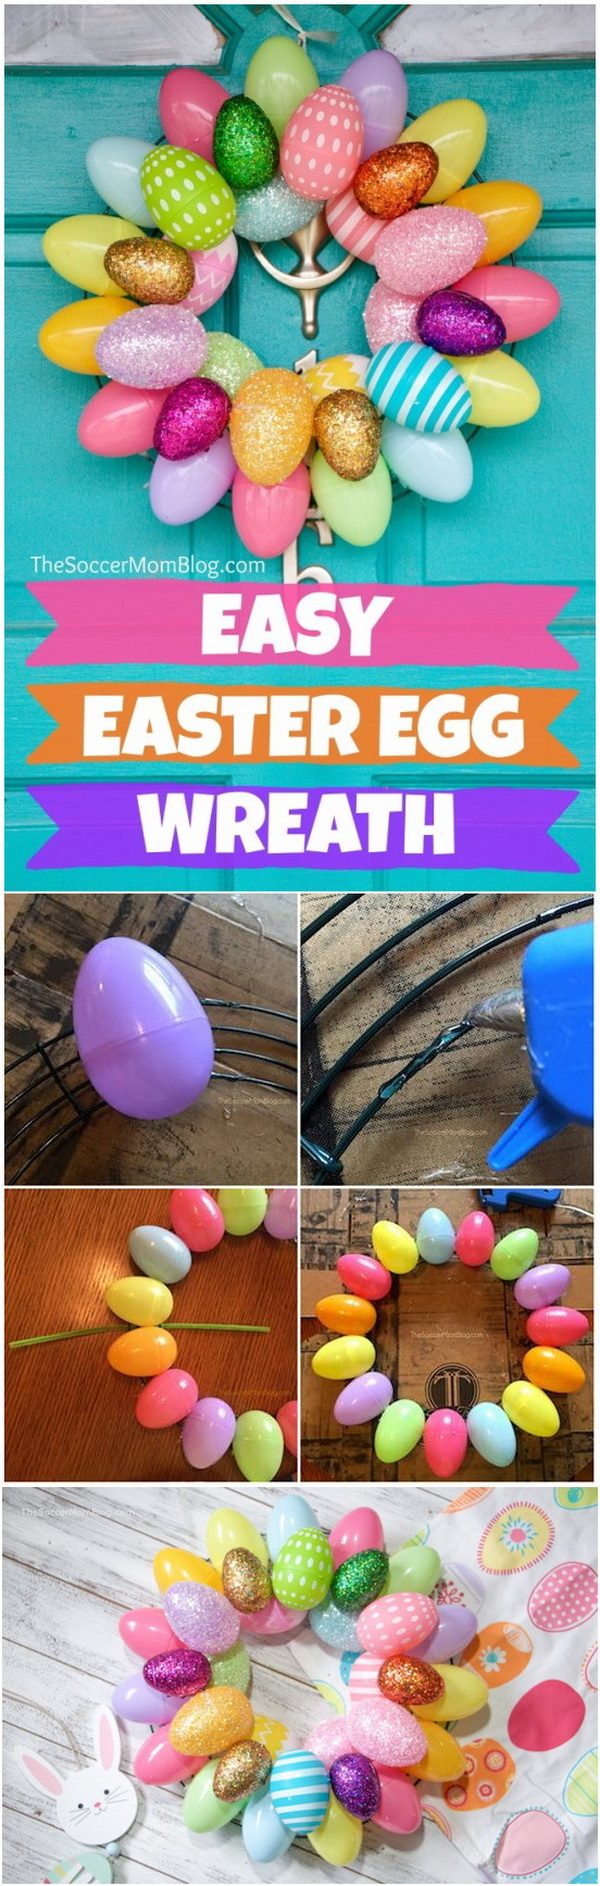 DIY Easter Wreath Ideas: 10 Minute Easter Egg Wreath.